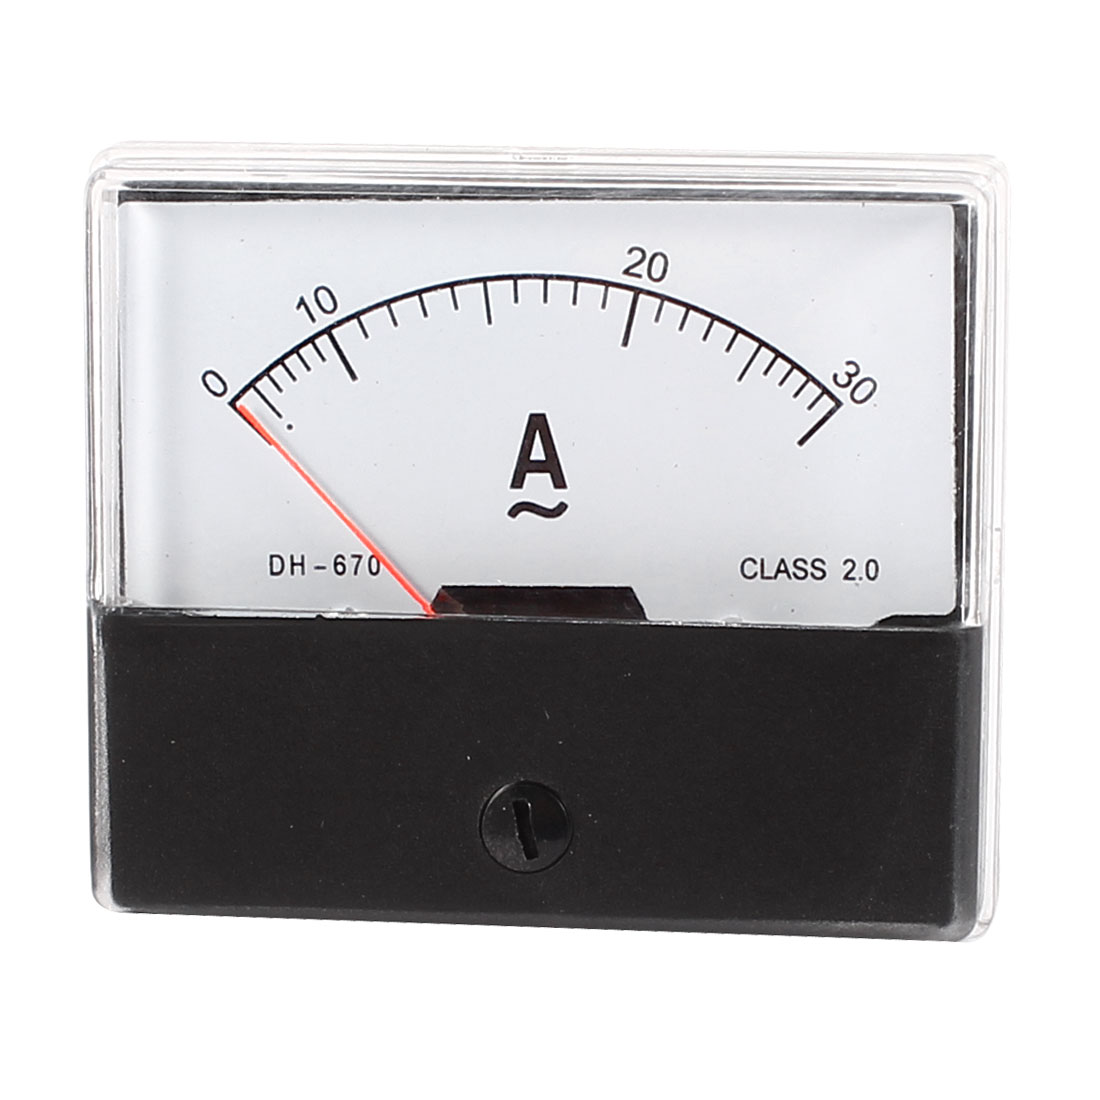 Current Analog Panel Meter Ammeter Measuring Tool AC 30A